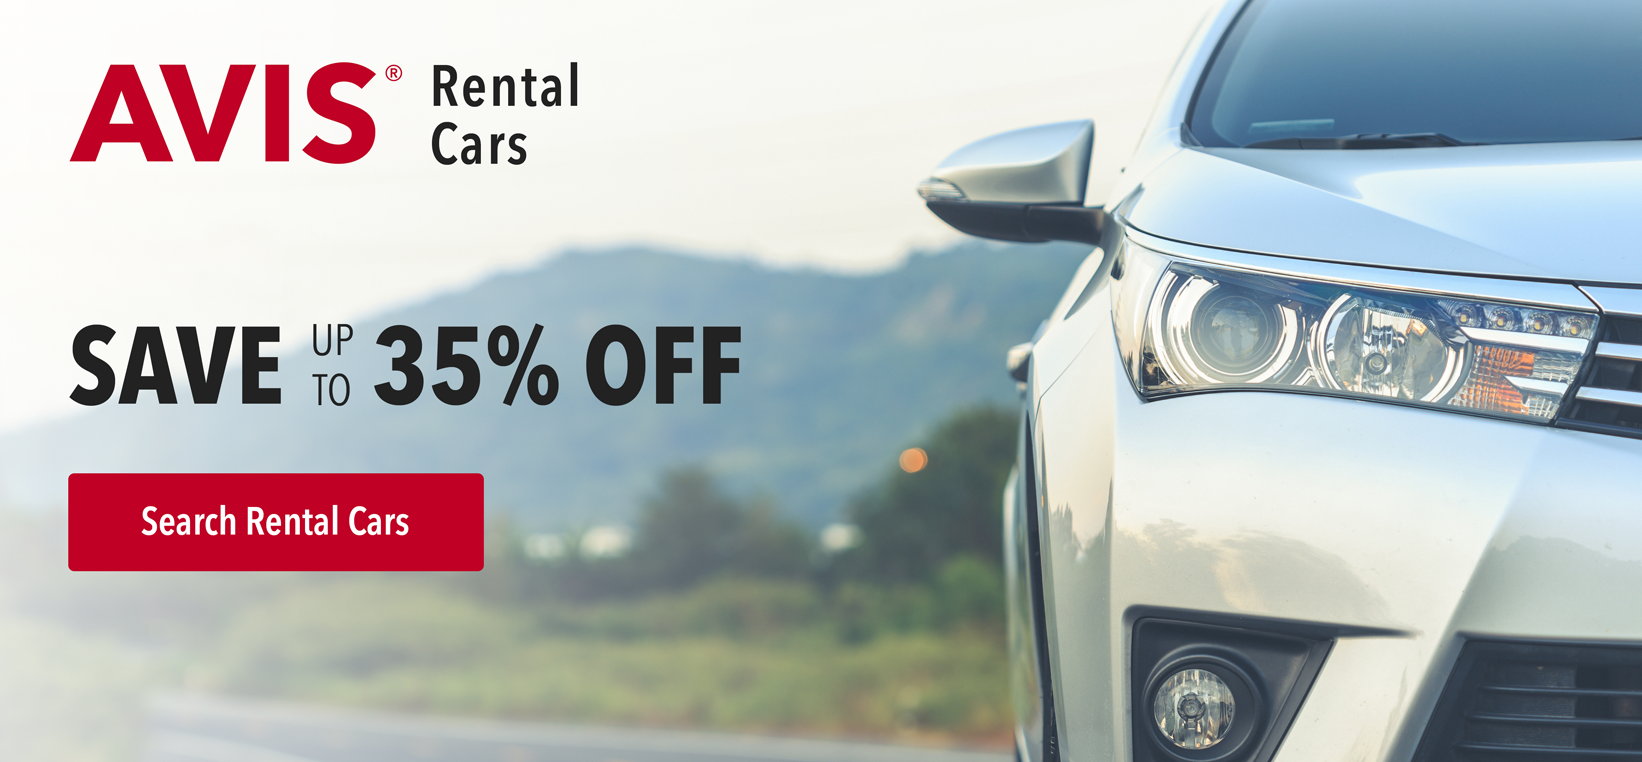 avis upto 35% off